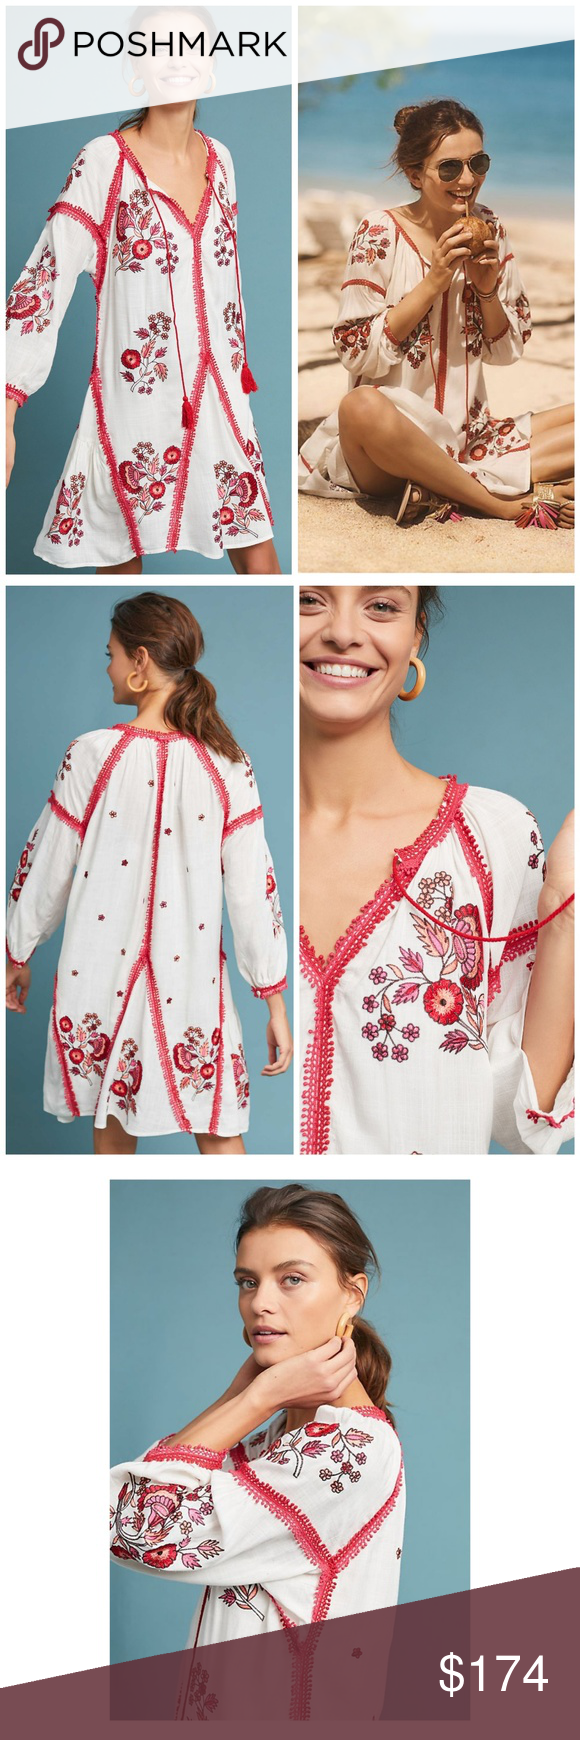 5b1d1ecf66f1 NWT, Anthropologie, Ranna Gill Hadley Dress Step out in style in this  delicately embroidered